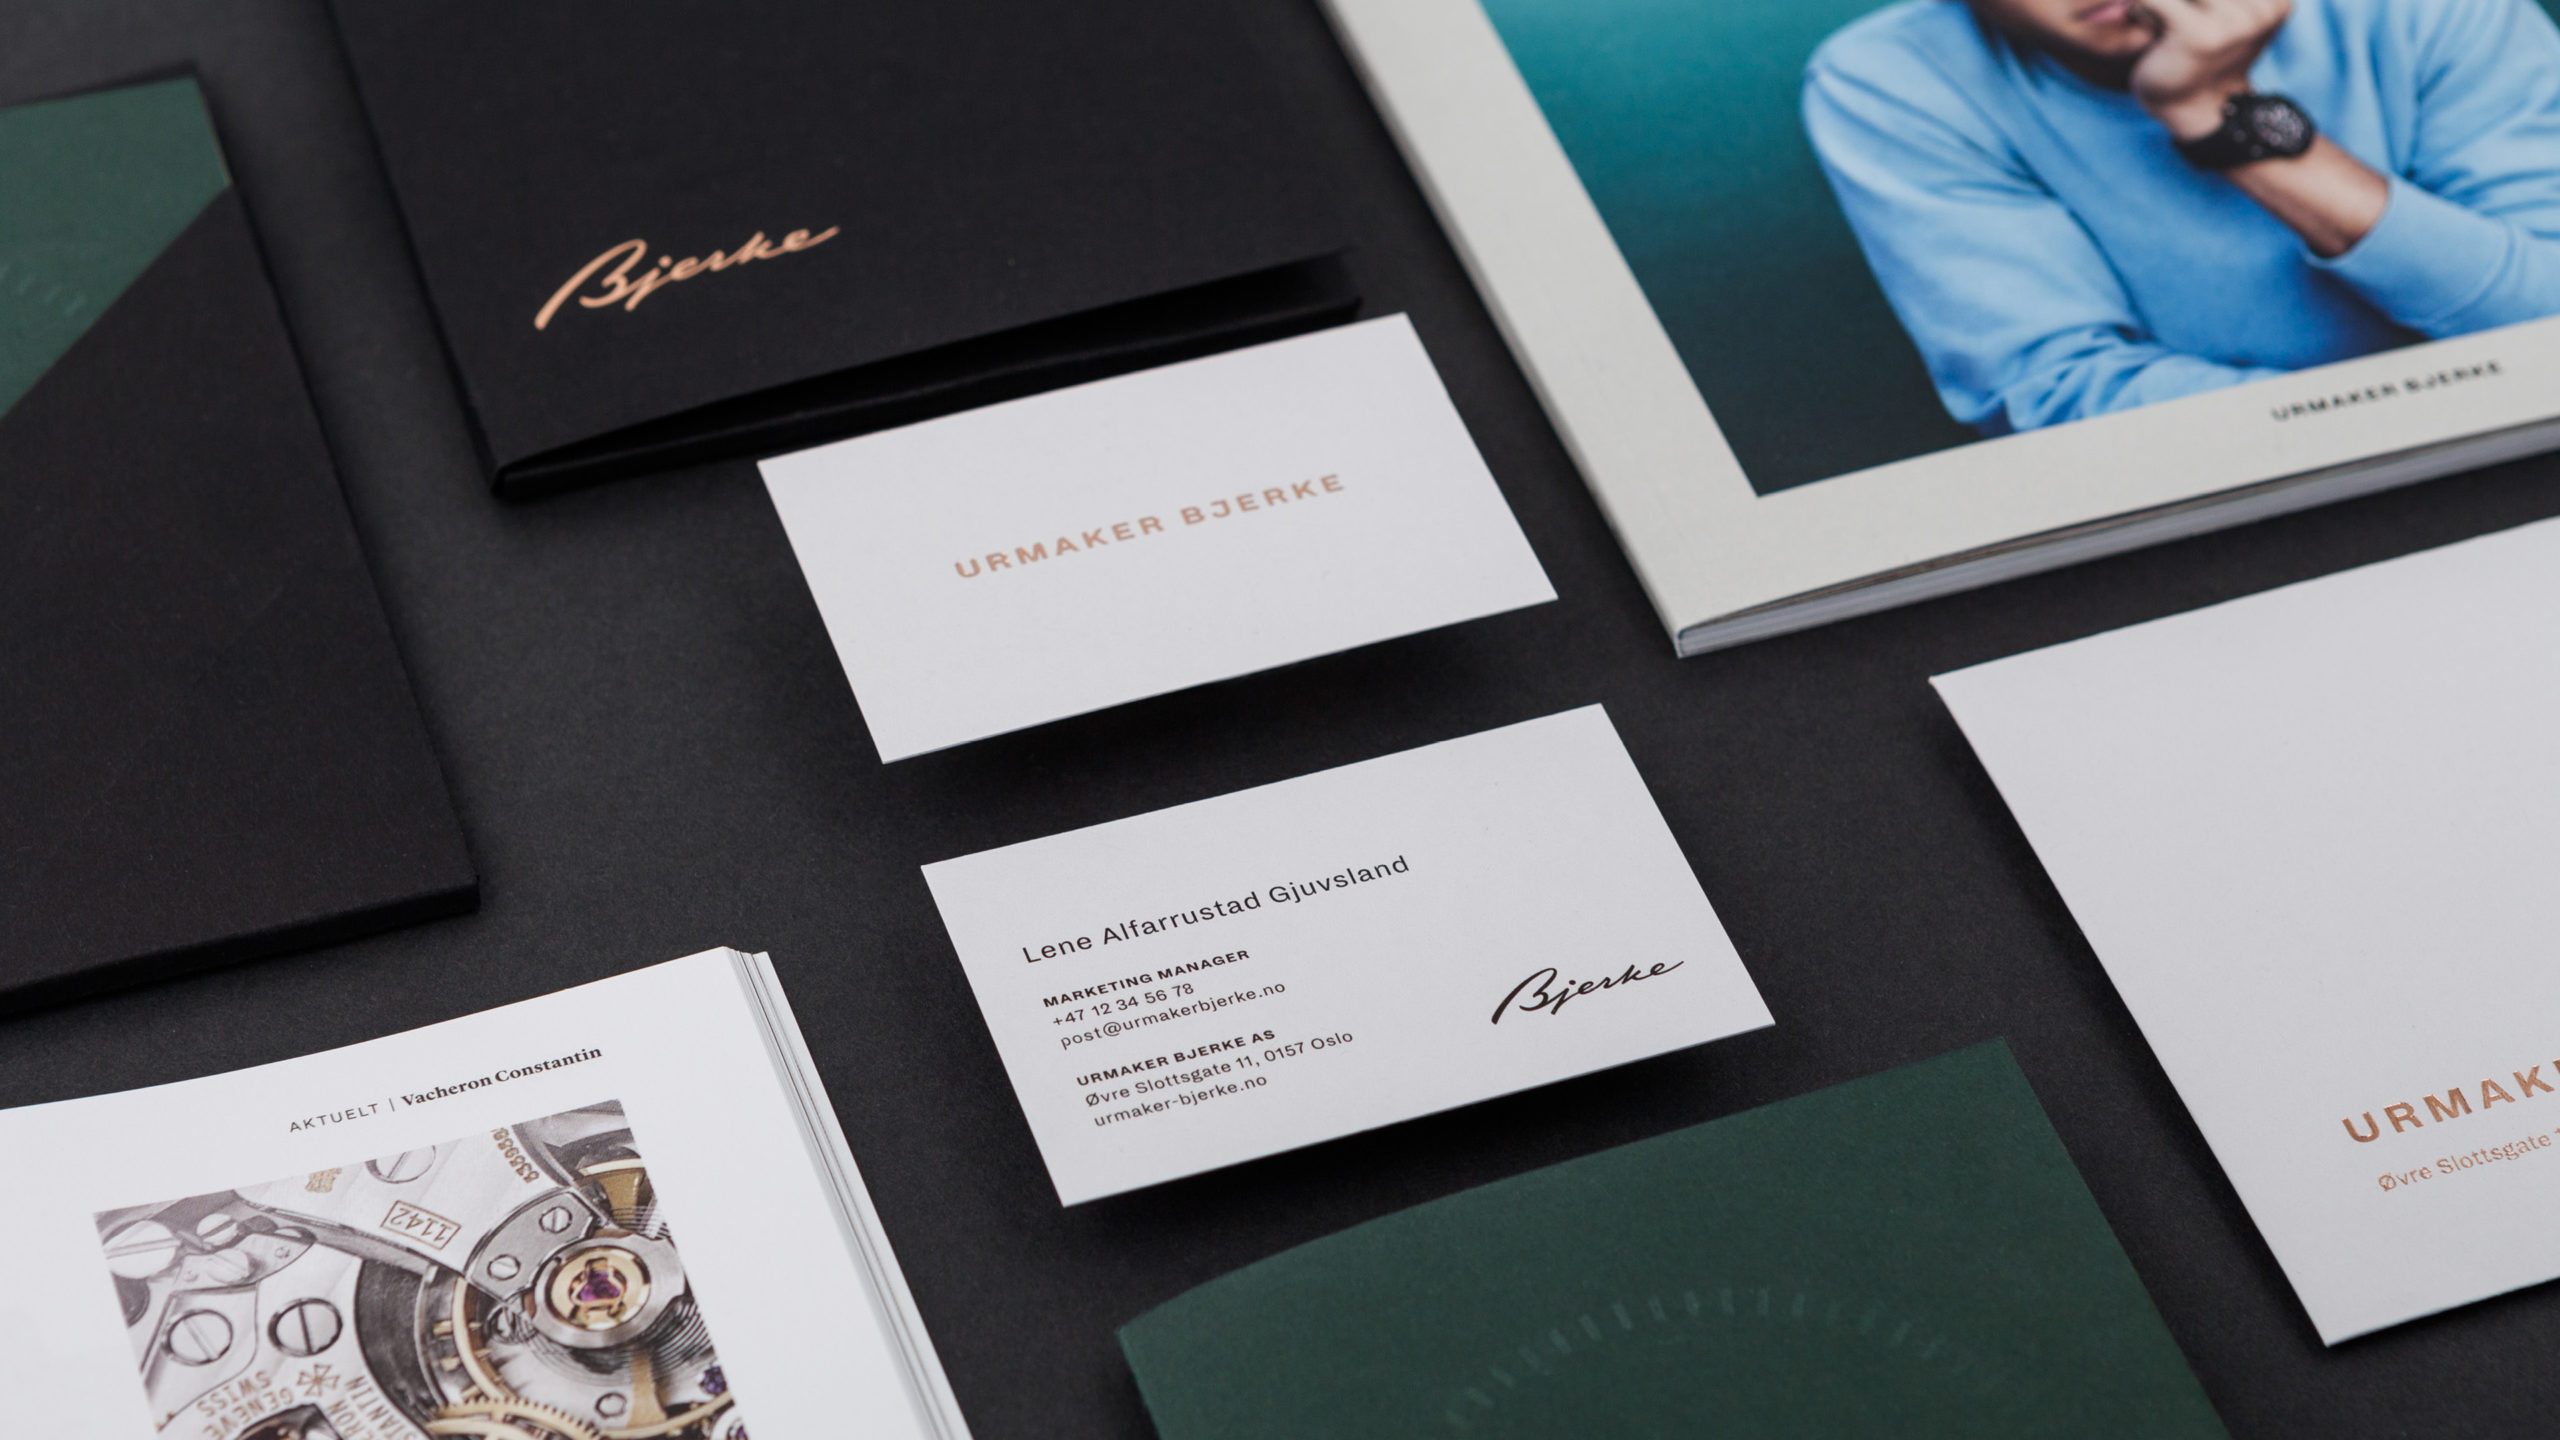 graphics/branding for Urmaker Bjerke